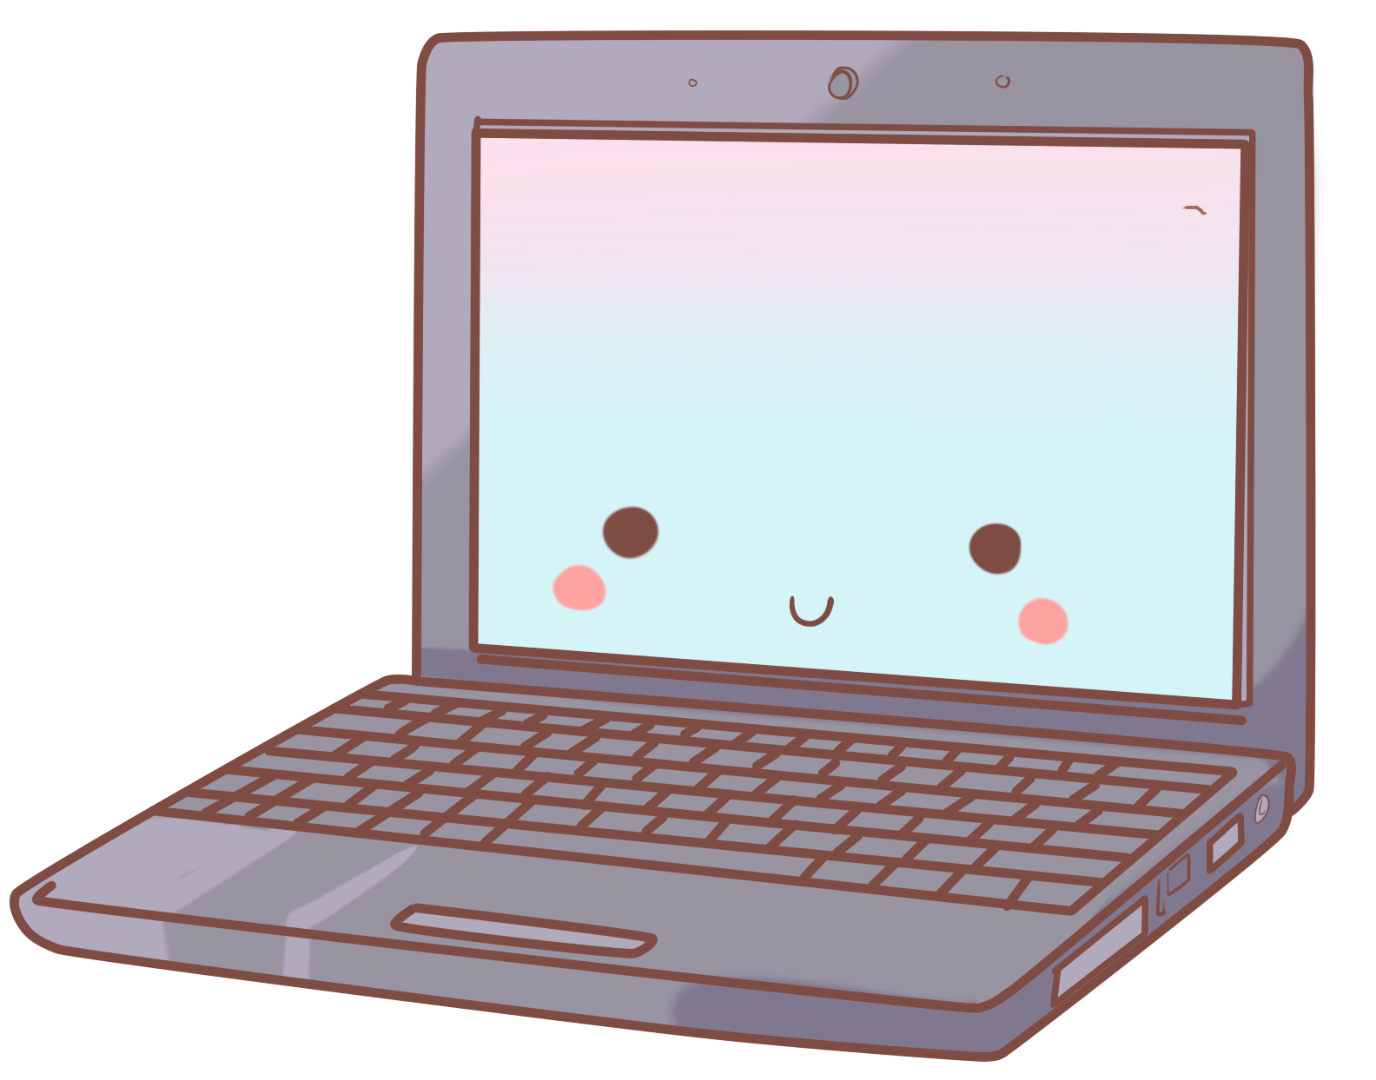 Cris garriga illustration. Kawaii clipart laptop